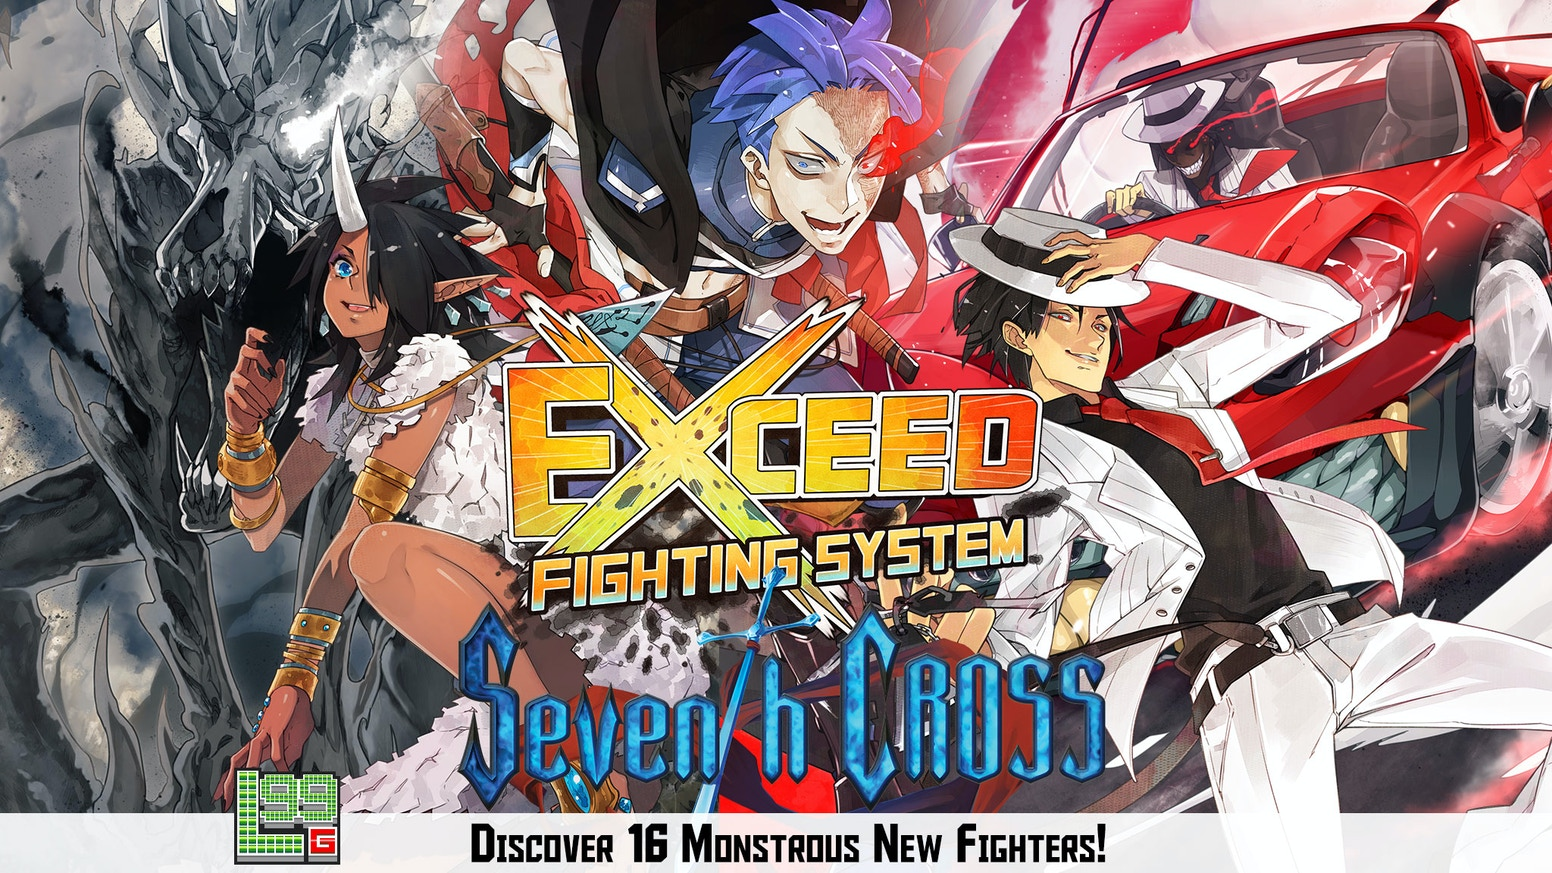 EXCEED brings the action and energy of arcade-style fighting to your tabletop in a fast-paced 15-minute, 2-player card game!